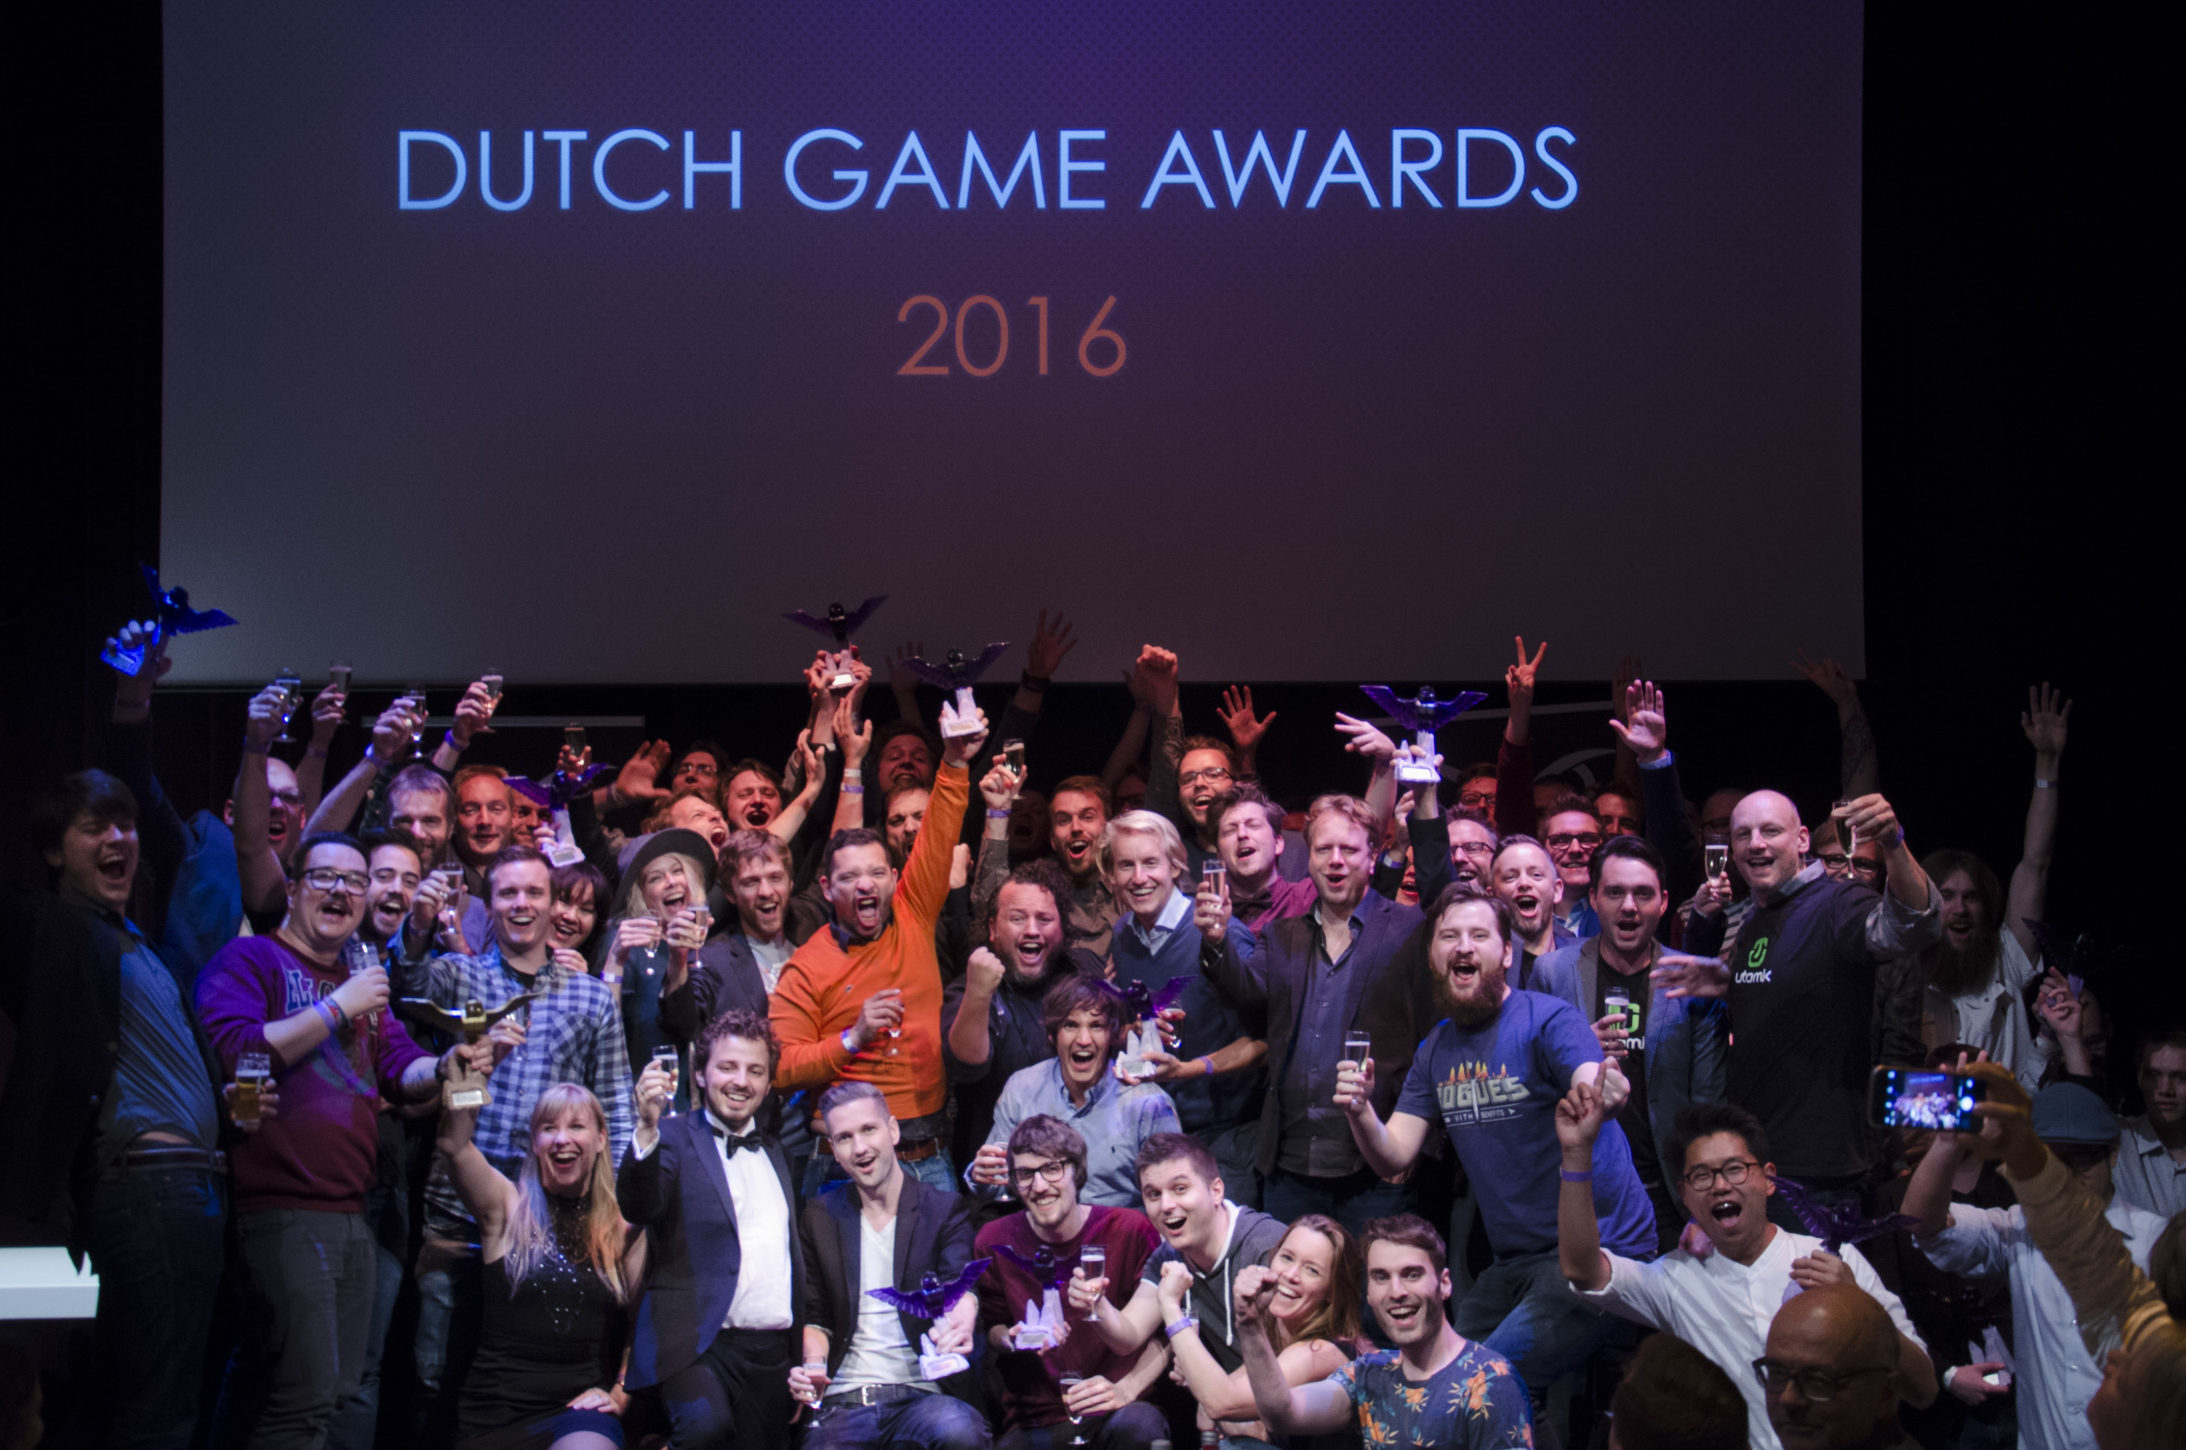 Dutch Game Awards